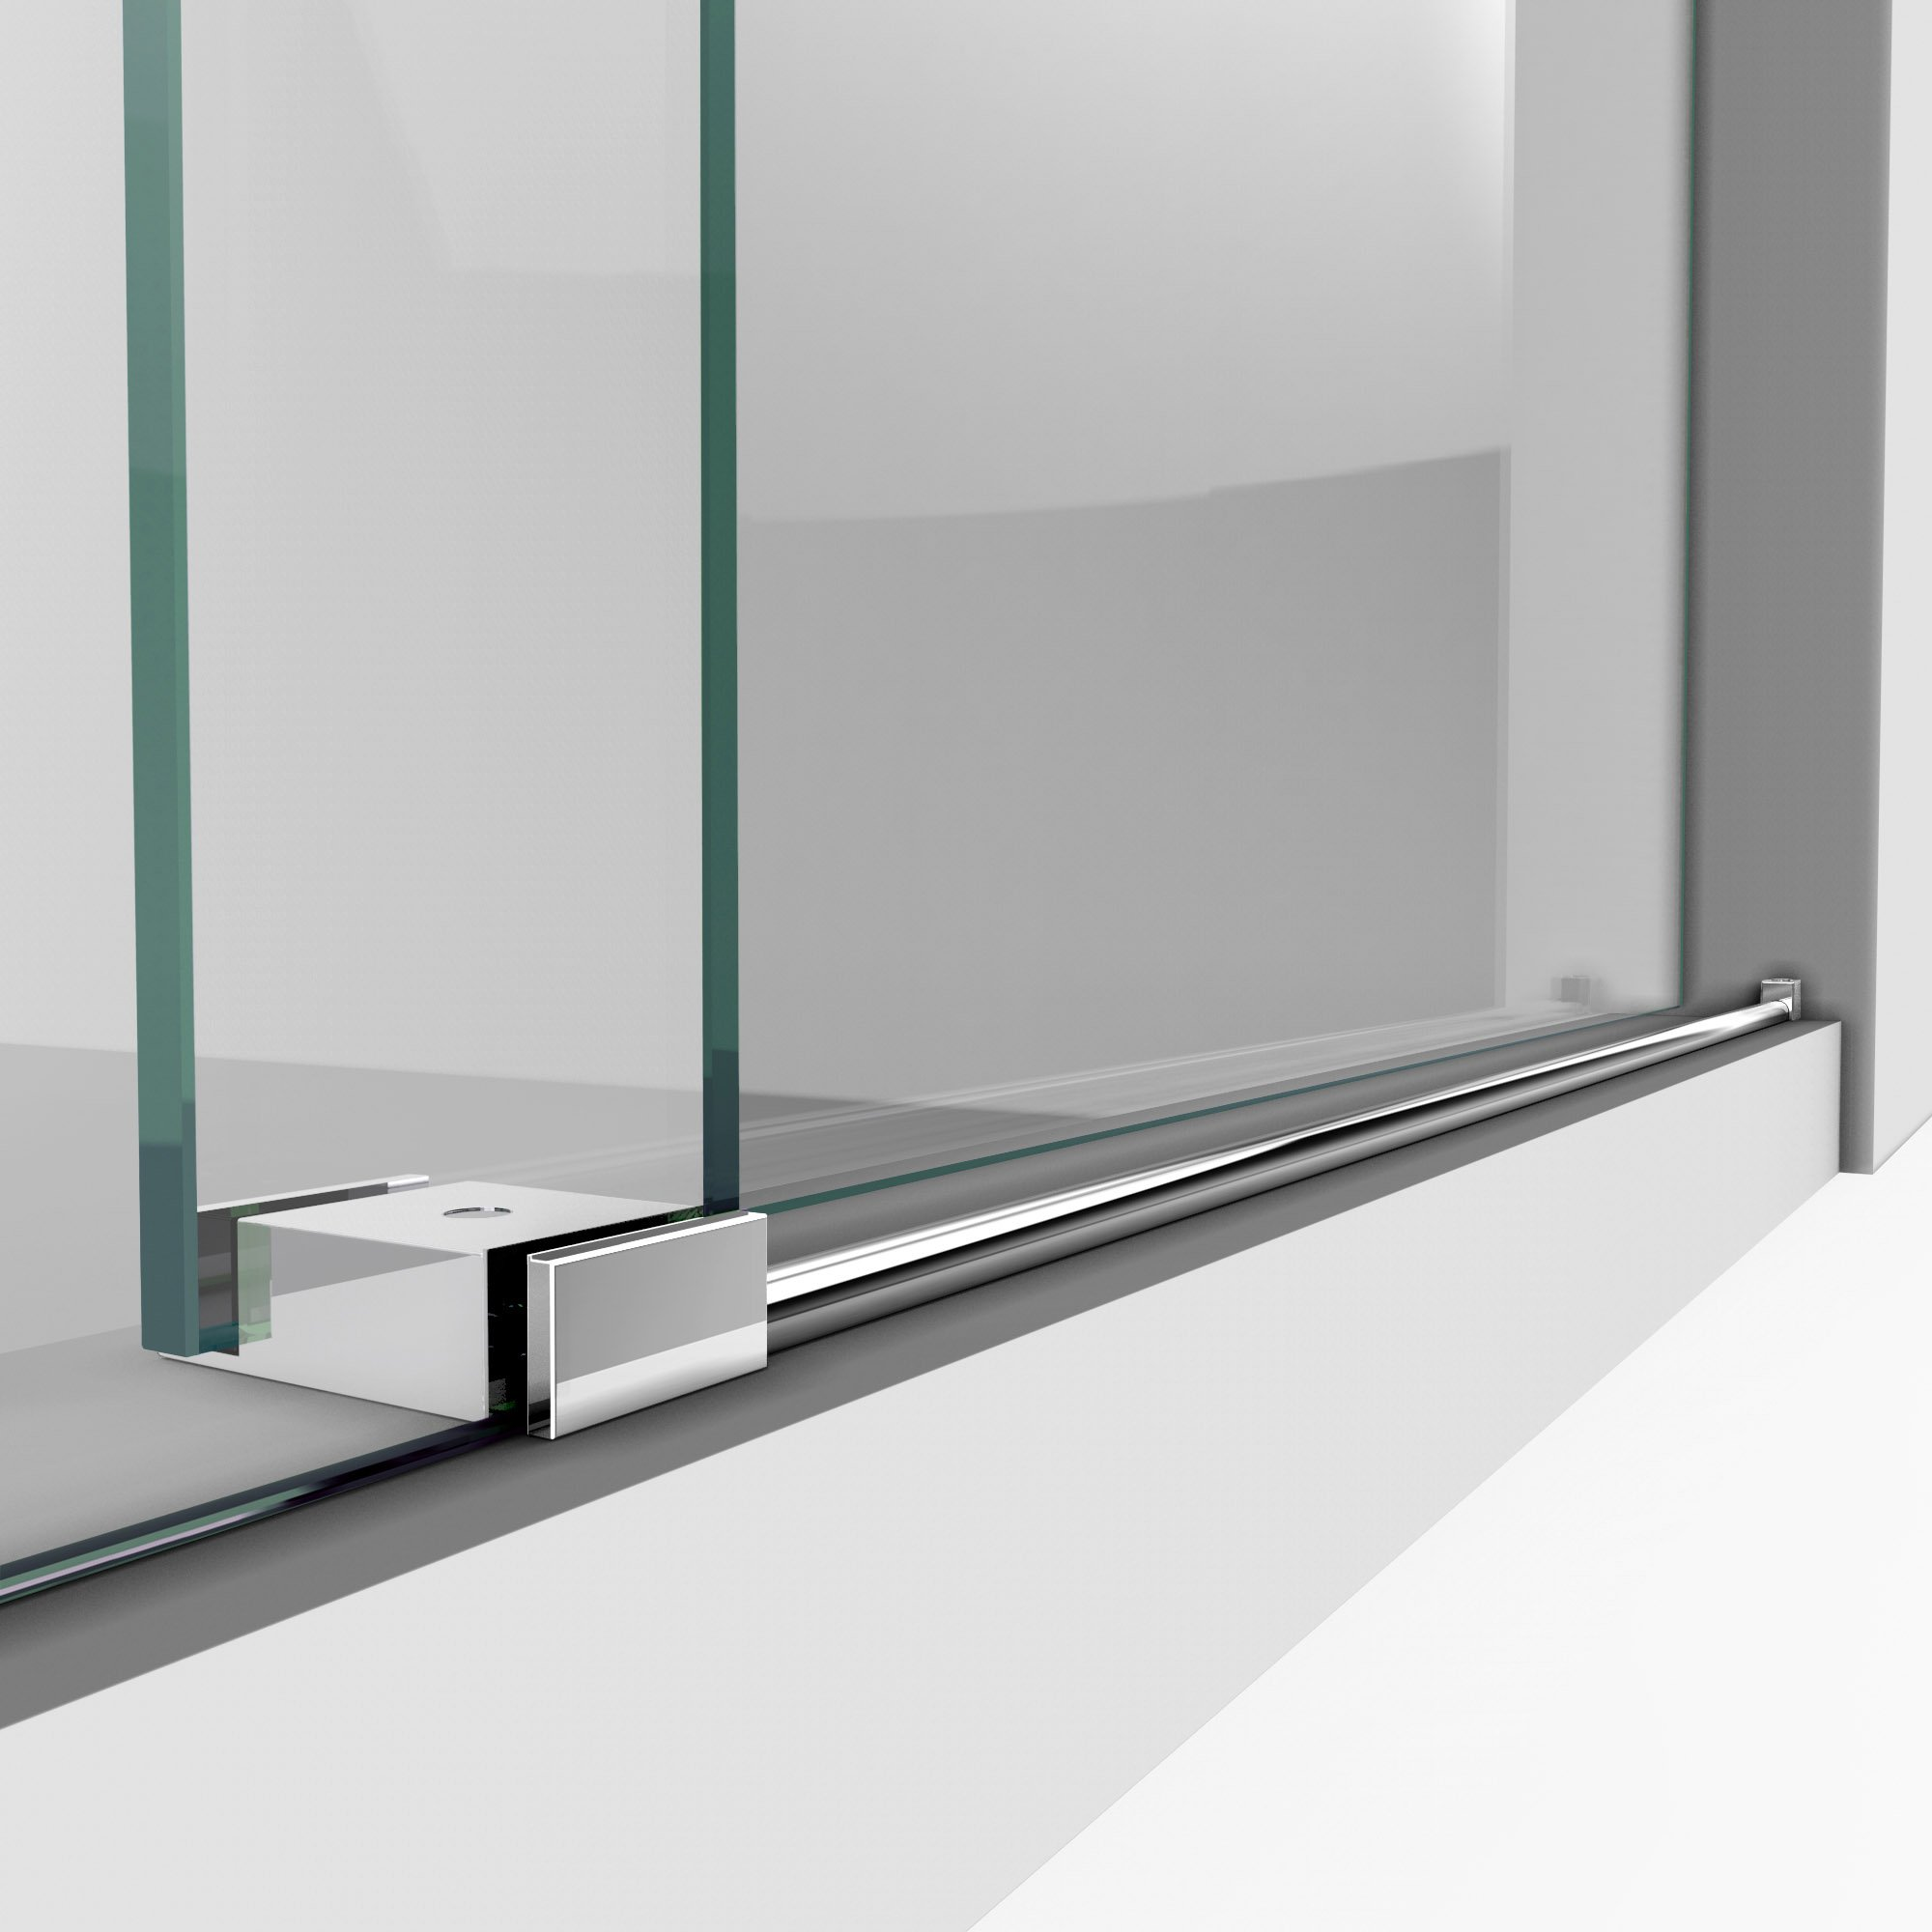 DreamLine Enigma-X 55-59 in. W x 62 in. H Fully Frameless Sliding Tub Door in Polished Stainless Steel, SHDR-61606210-08 by DreamLine (Image #9)